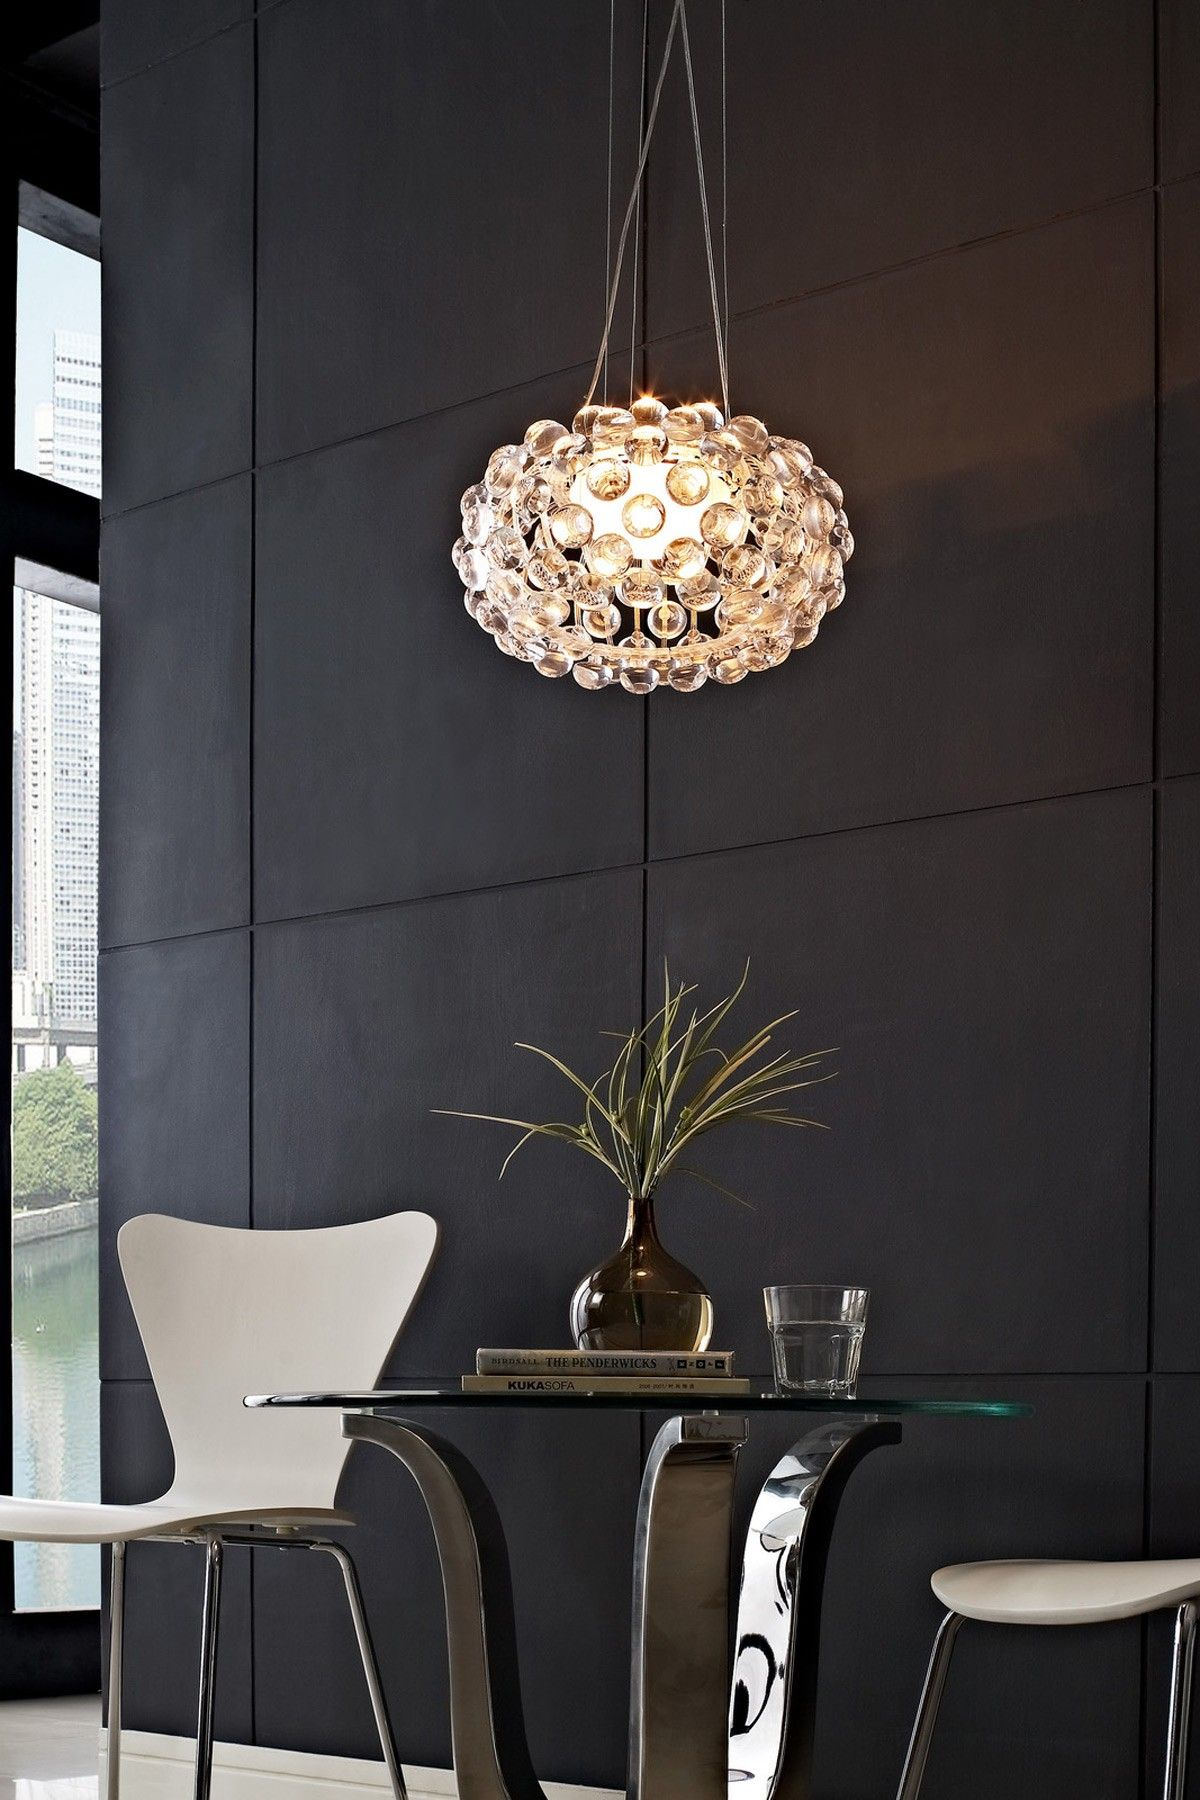 26 Halo Acrylic Crystal Ceiling Fixture. Perfect for a waiting area